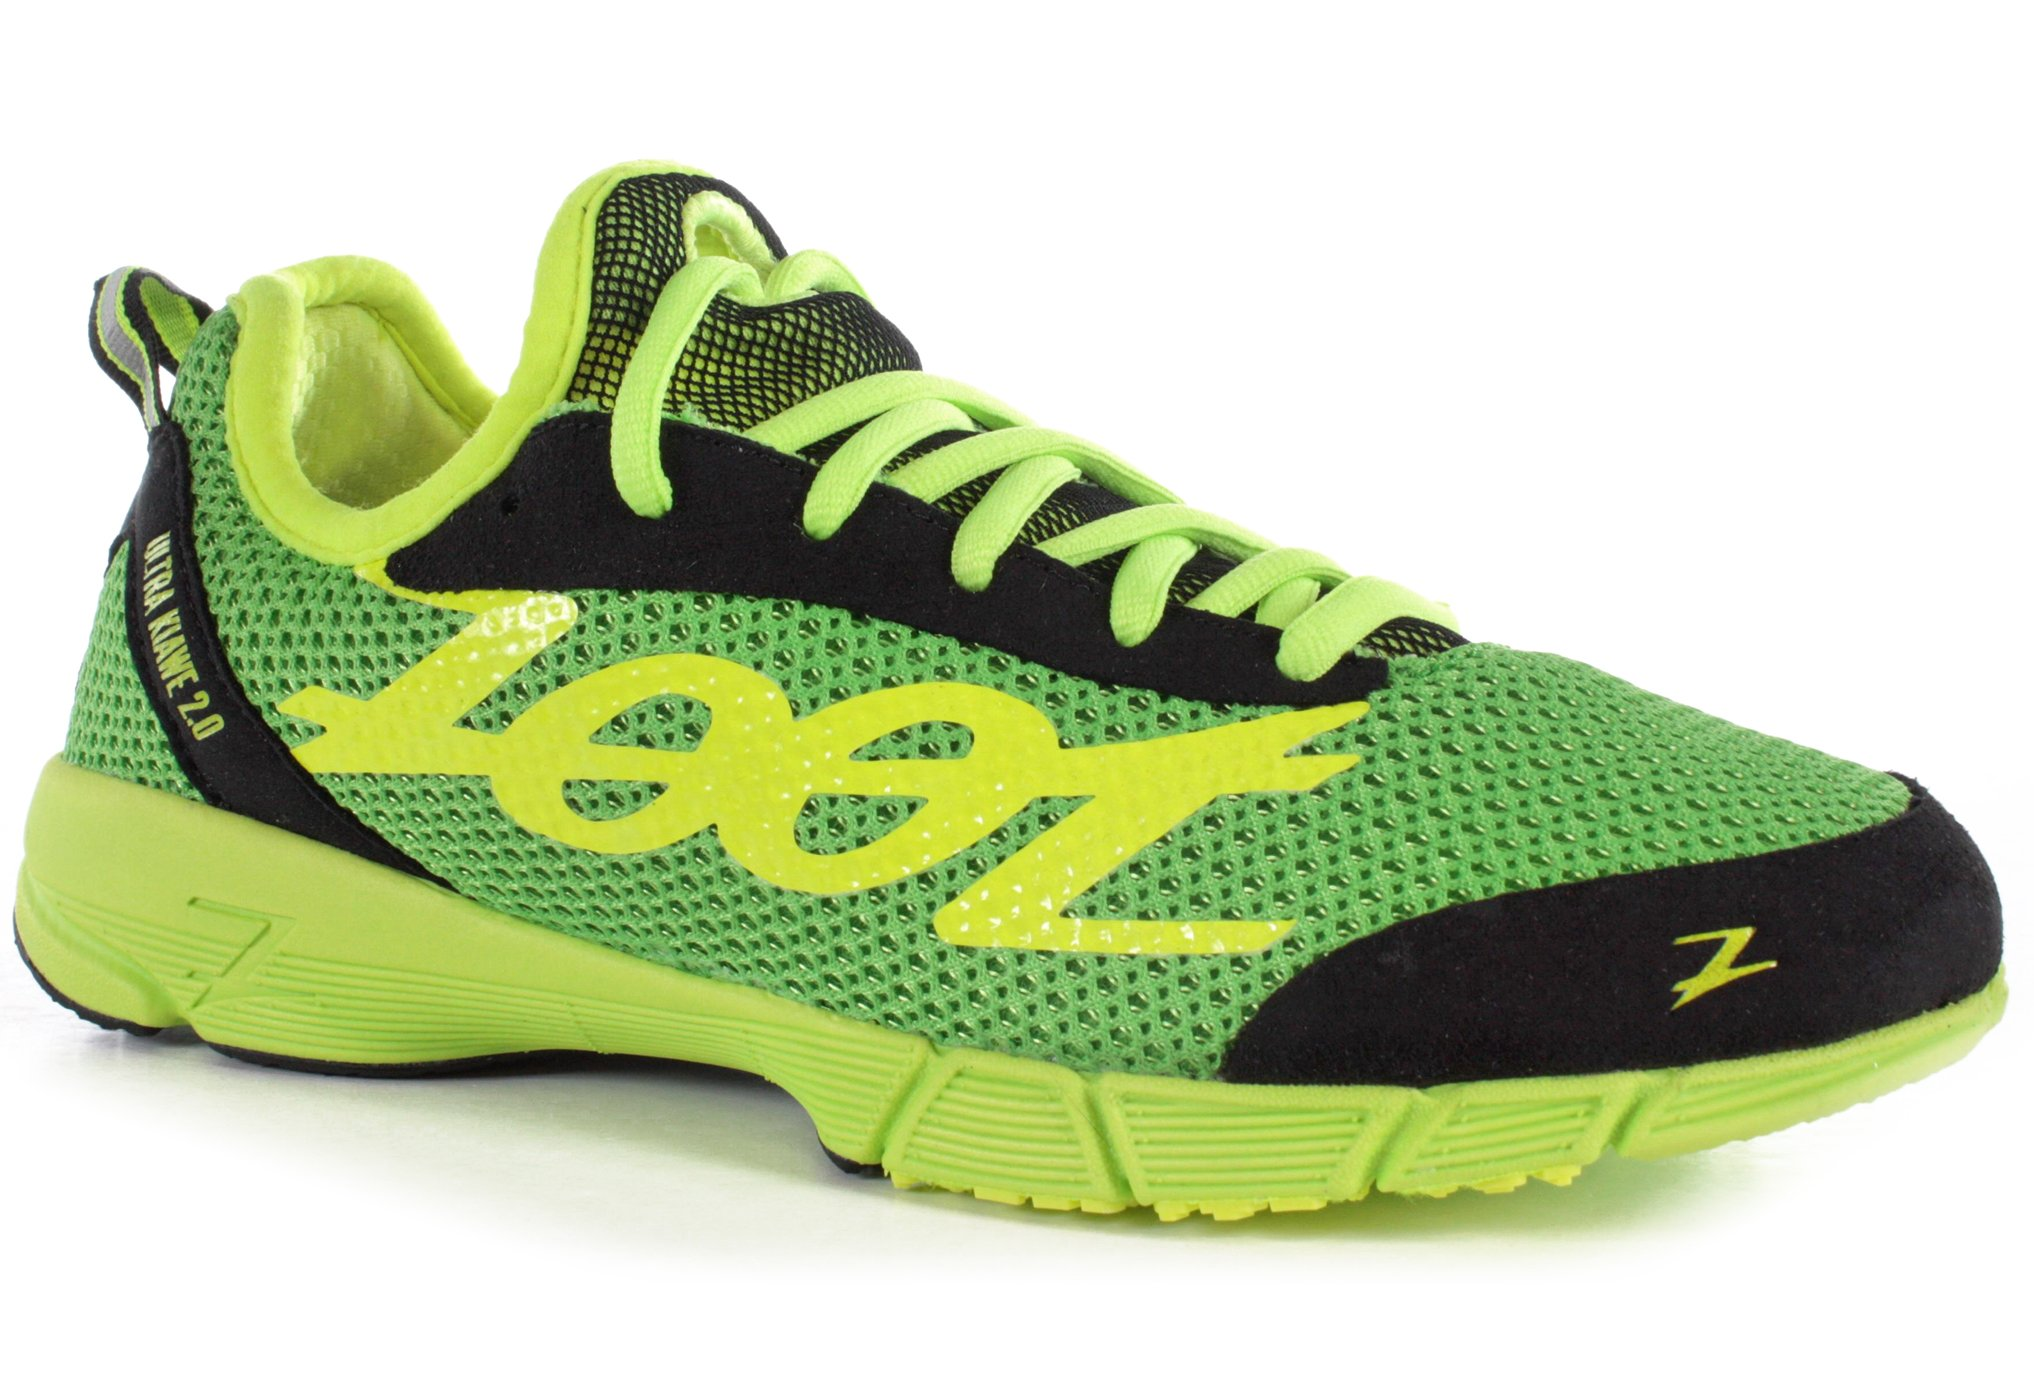 Zoot Kiawe 2.0 M Chaussures homme